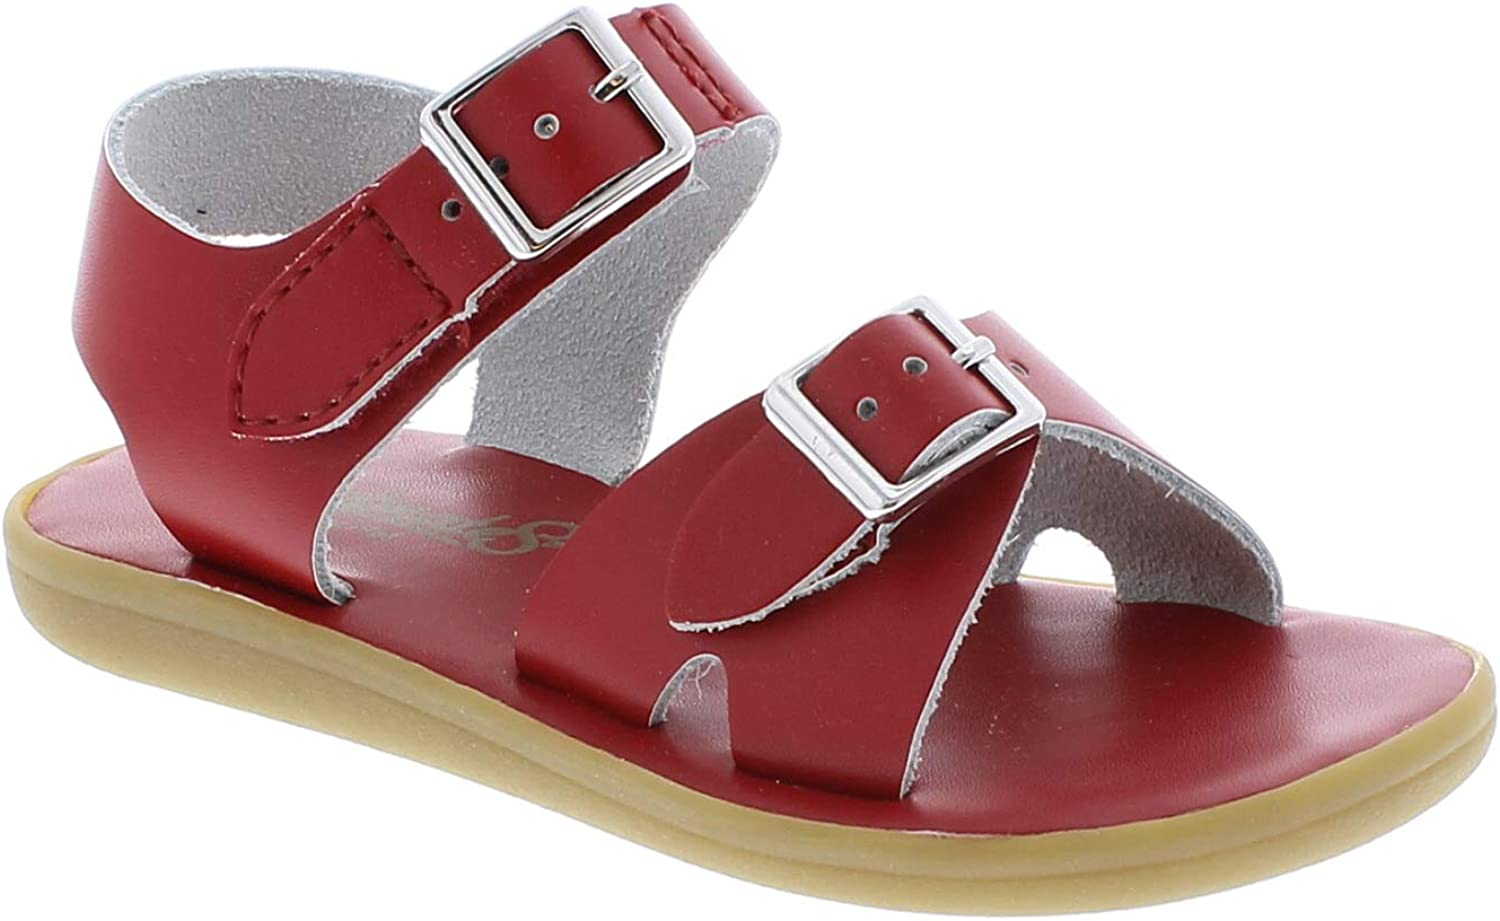 FOOT MATES Boys Tide Hook-and-Loop and Buckle Sandal Kelly Green 1015